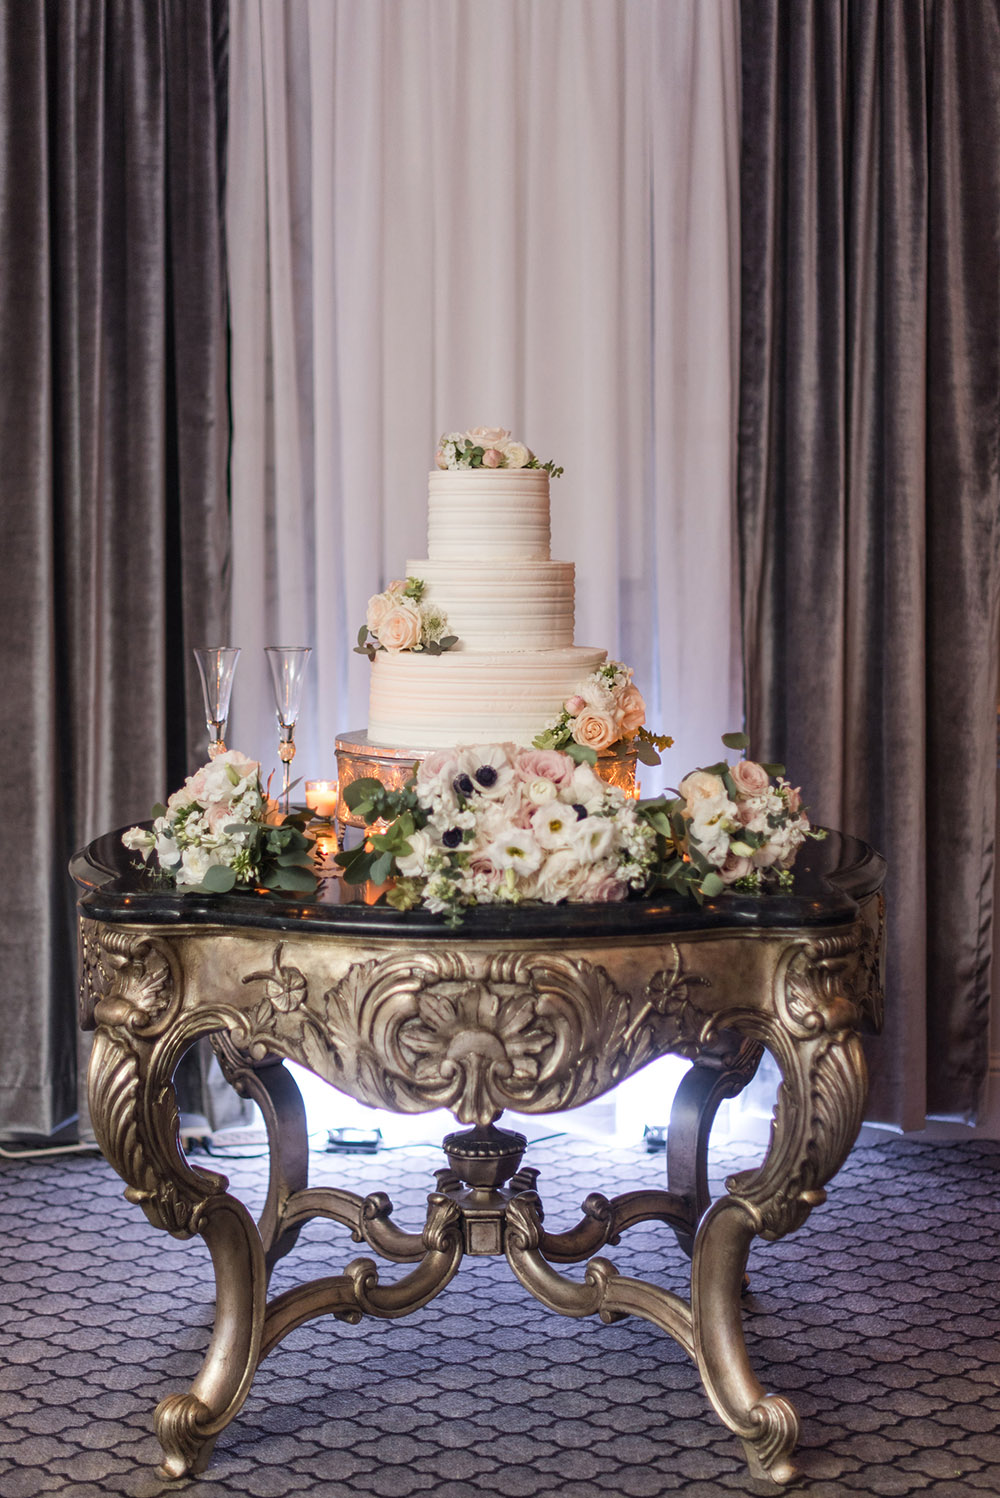 The wedding cake by Gambino's Bakery